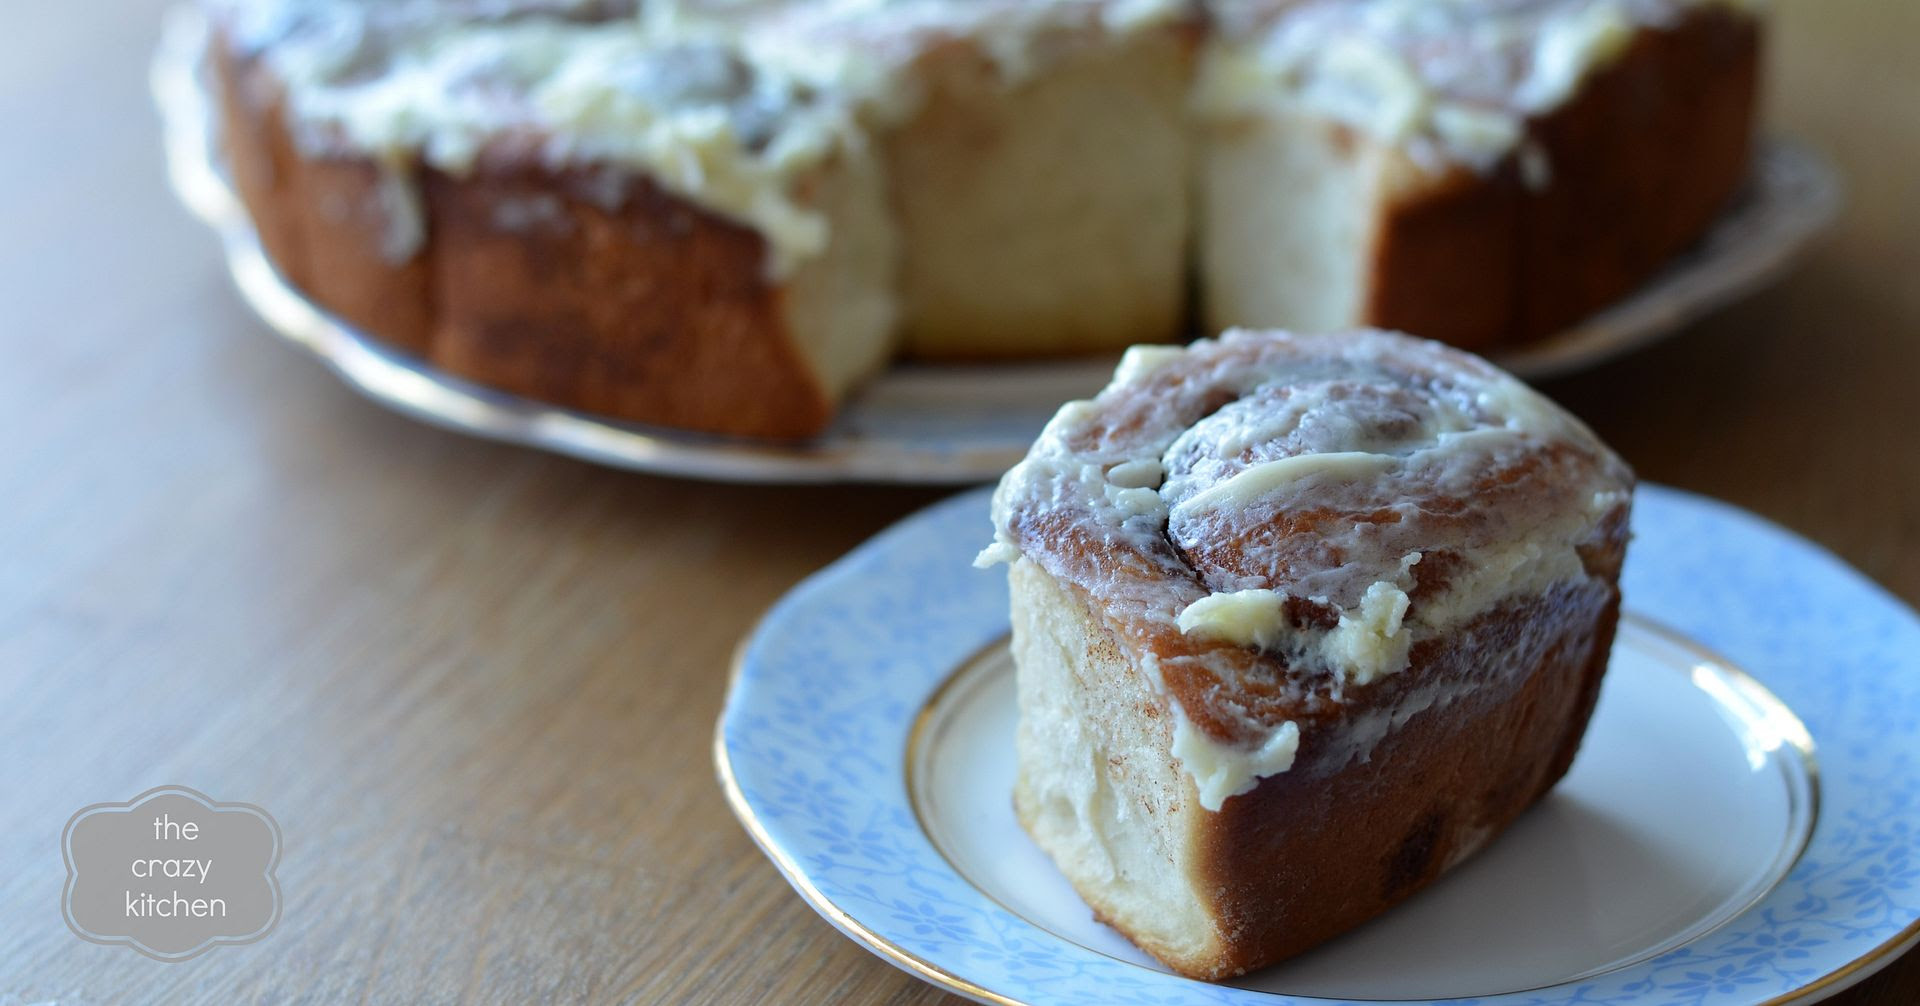 photo cinnamonbuns2_zps0674da3f.jpg